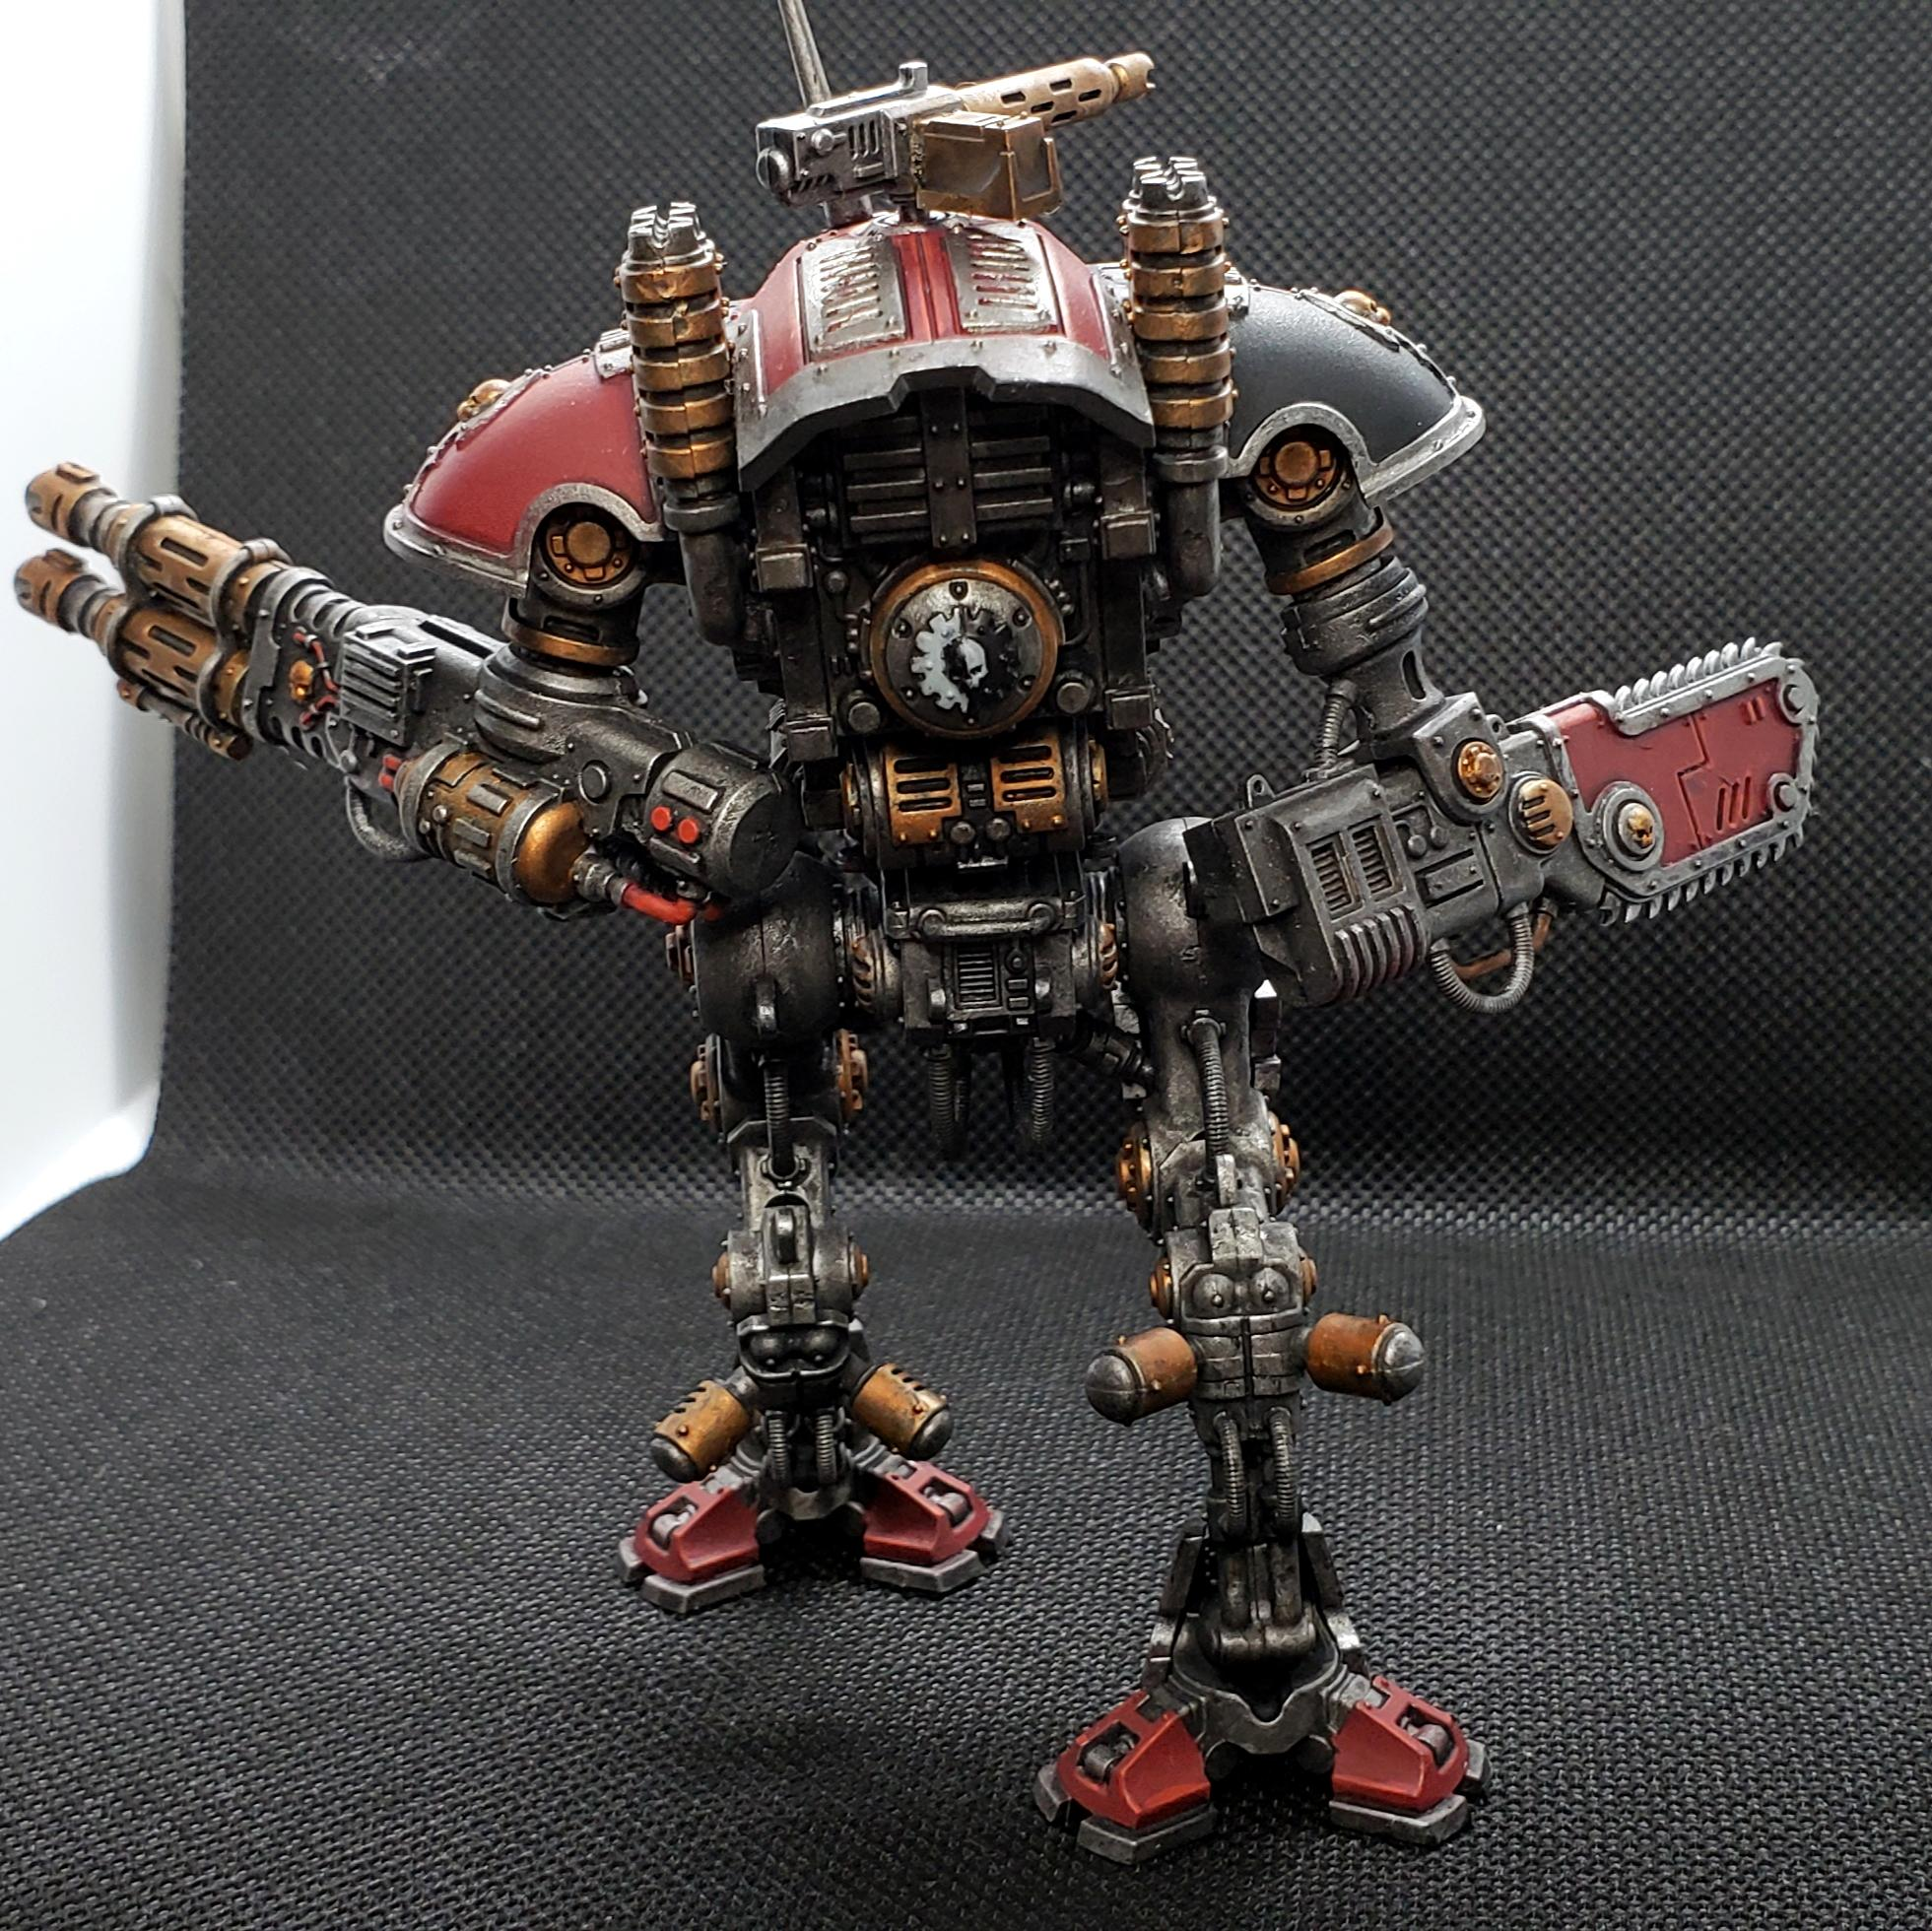 Adeptus Mechanicus, Admech, Armiger, Armiger Warglaive, Armiger Warglaives, Imperial Knights, Warhammer 40,000